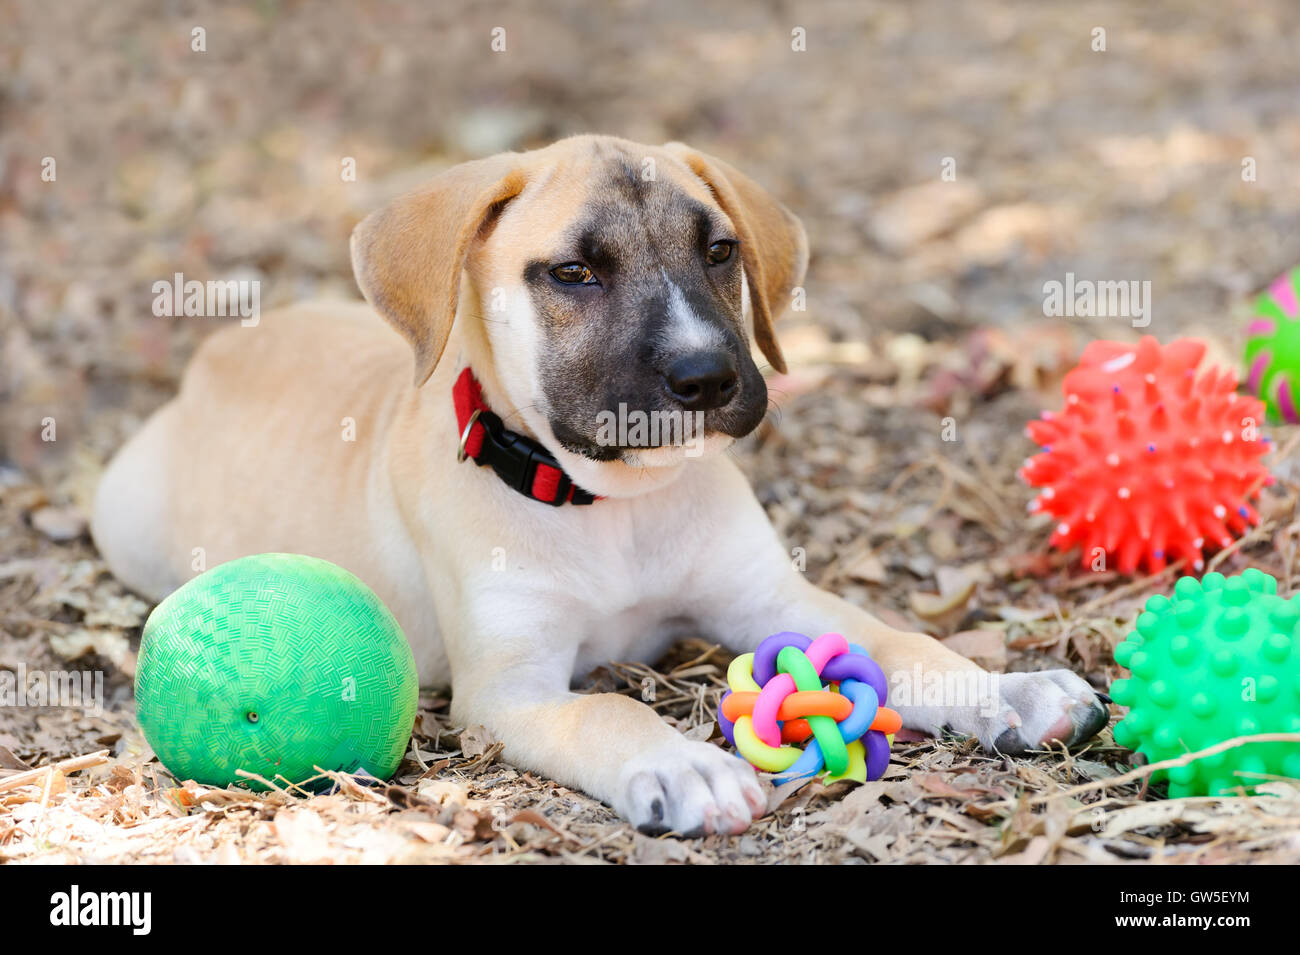 Dog toys is a cute happy adorable puppy playing with his toys